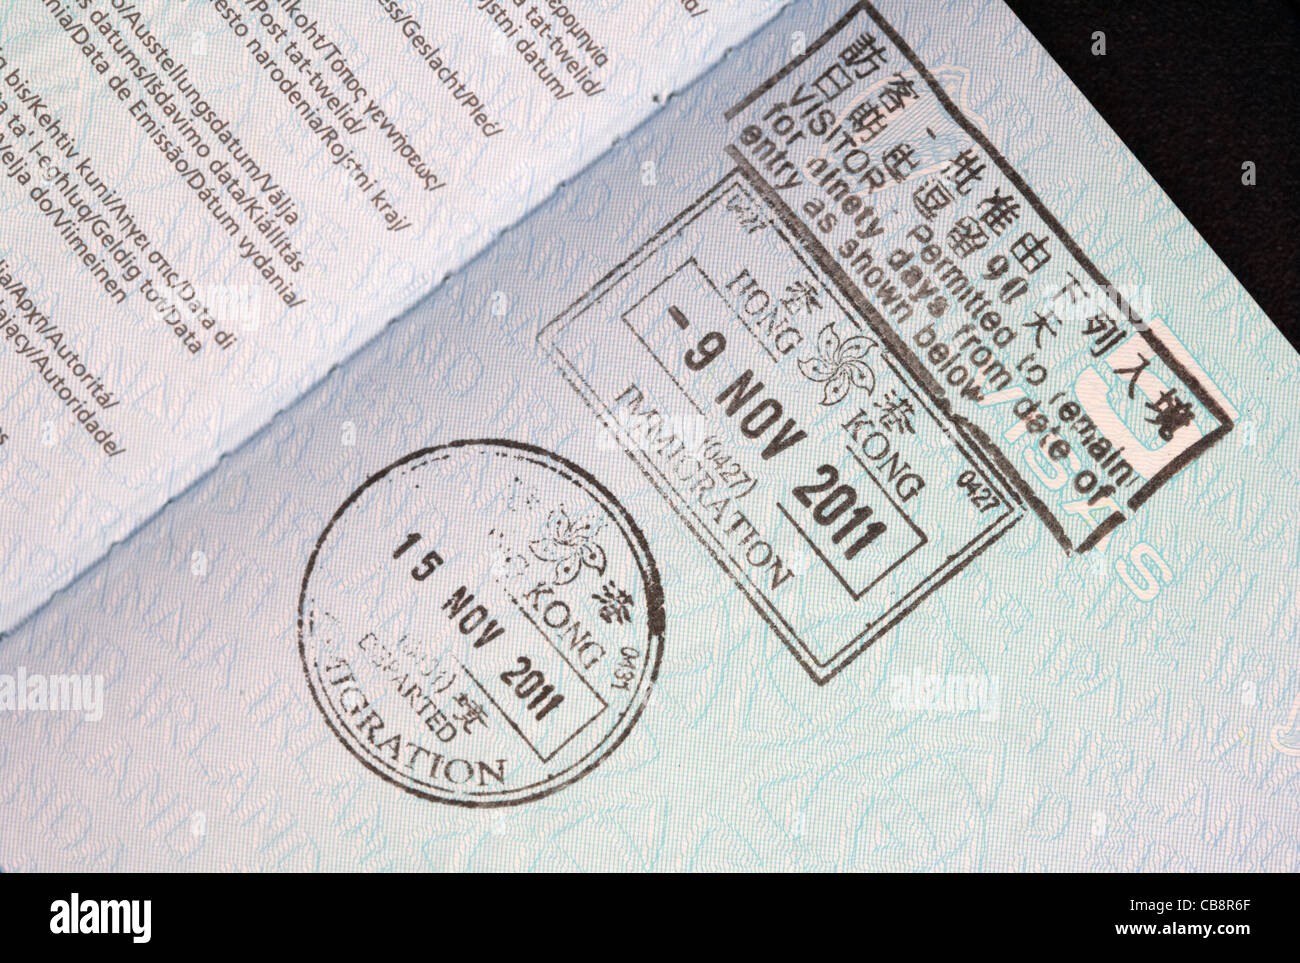 hong kong entry and exit visas stamp in an eu irish passport Stock Photo